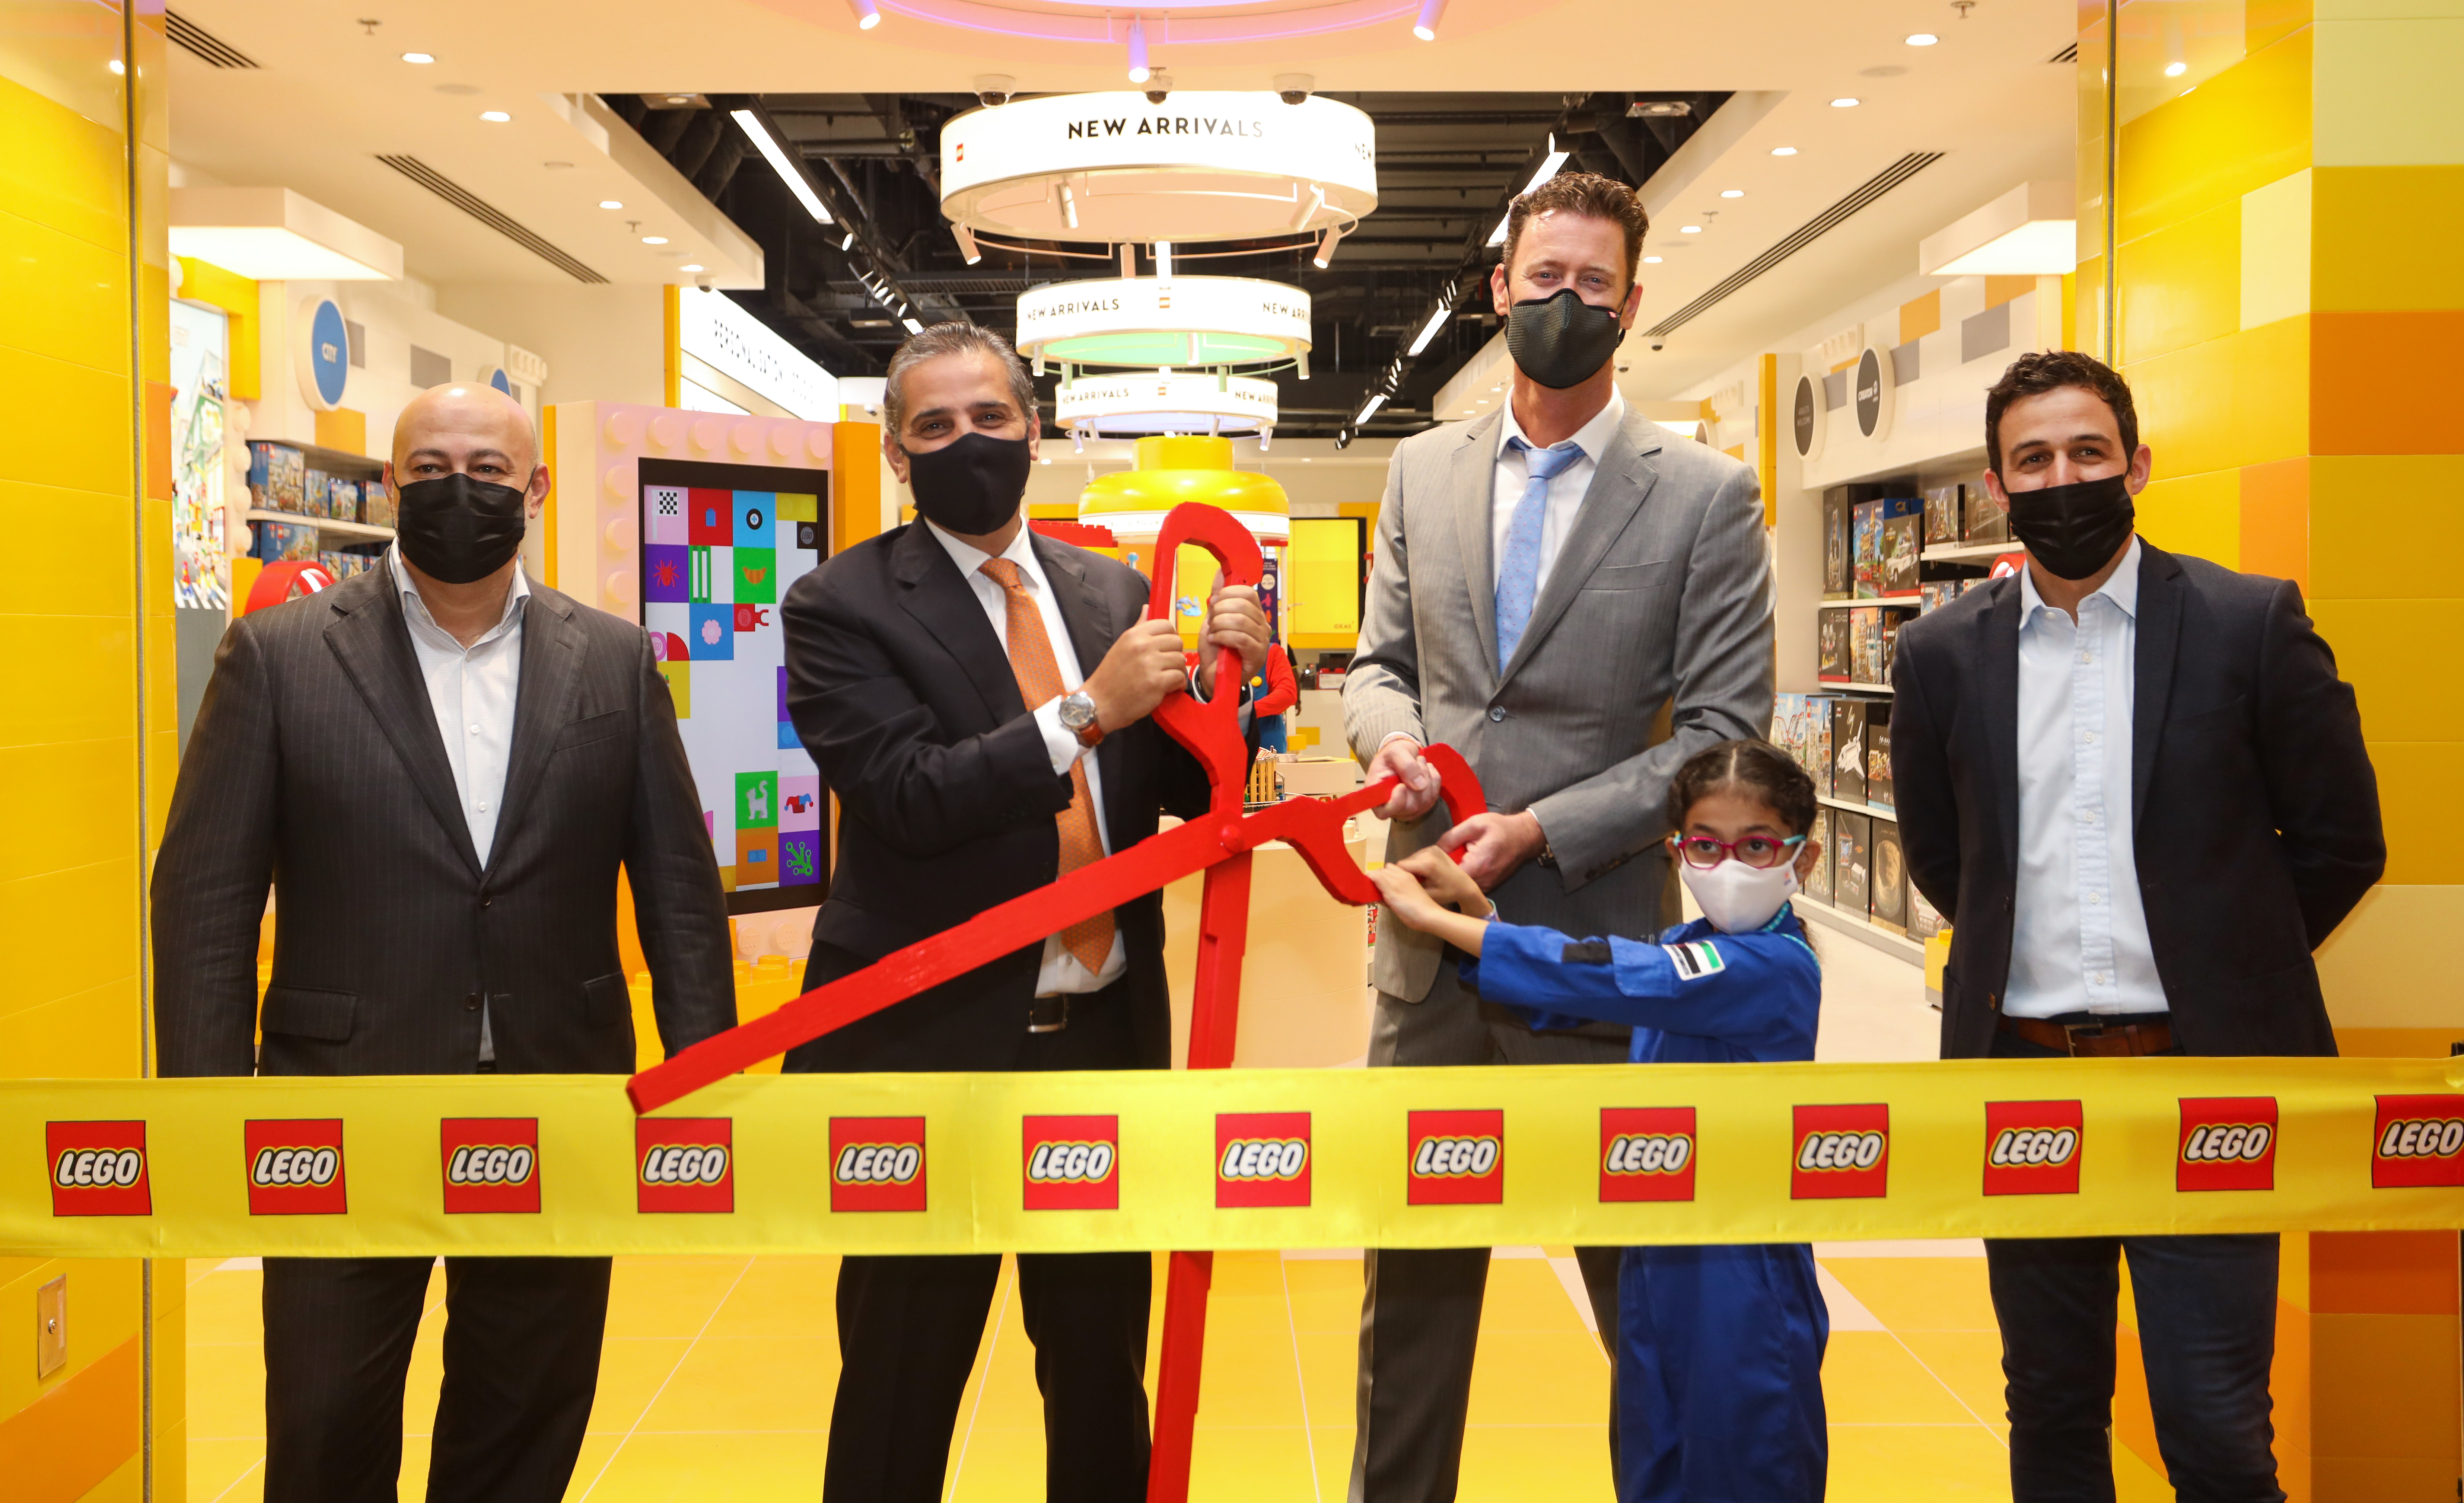 MAF Lifestyle launches first newly designed LEGO®Certified Store concept in the Middle East